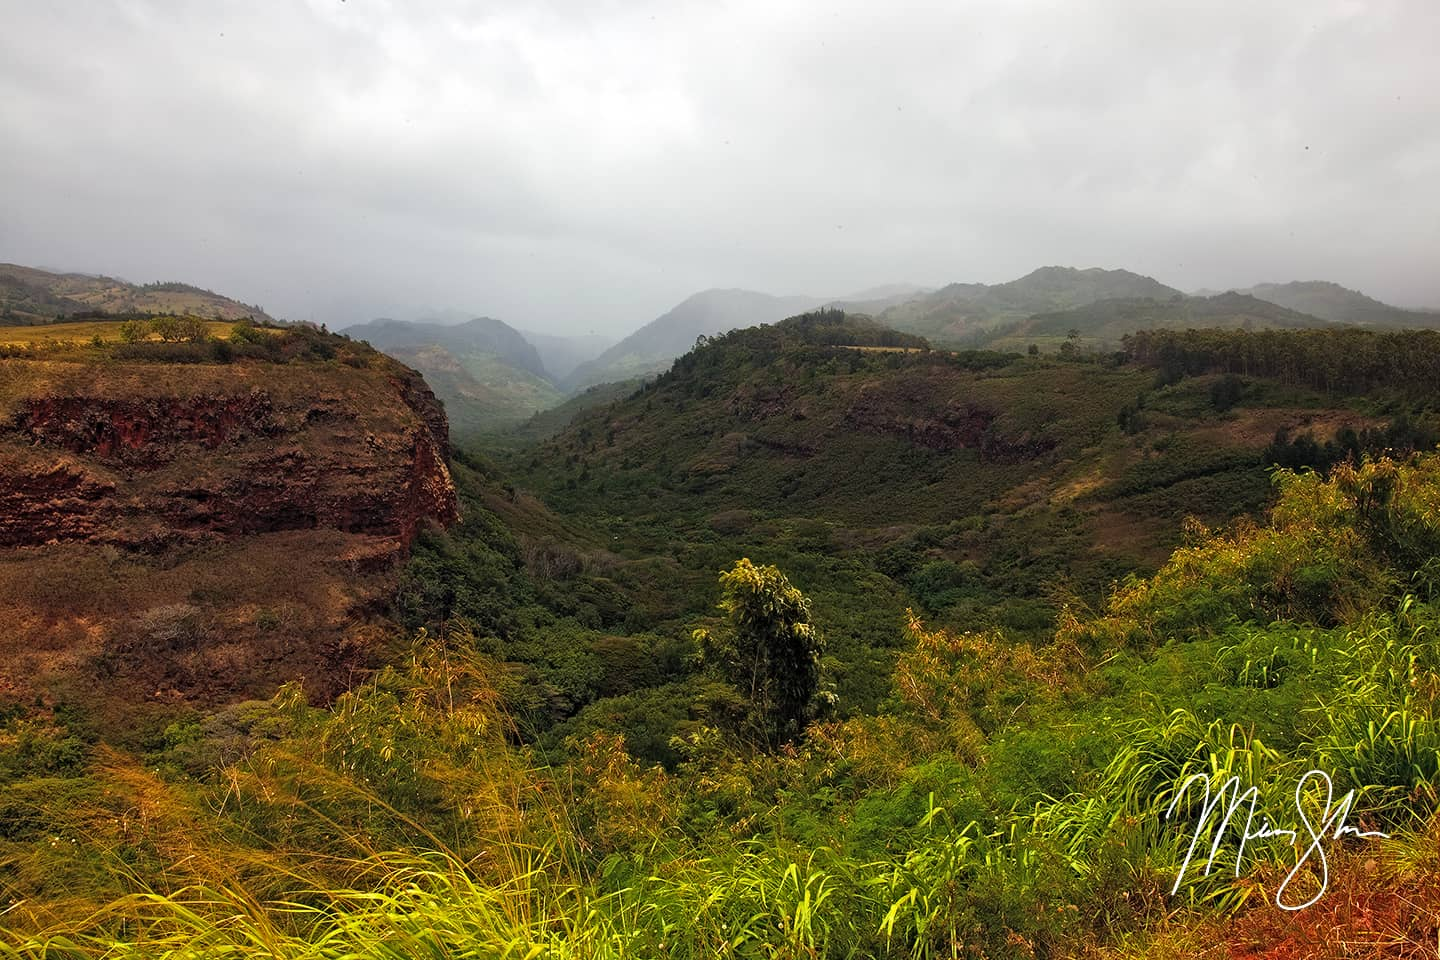 Open edition fine art print of Hanapepe Valley Lookout from Mickey Shannon Photography. Location: Hanapepe Valley, Kauai, Hawaii